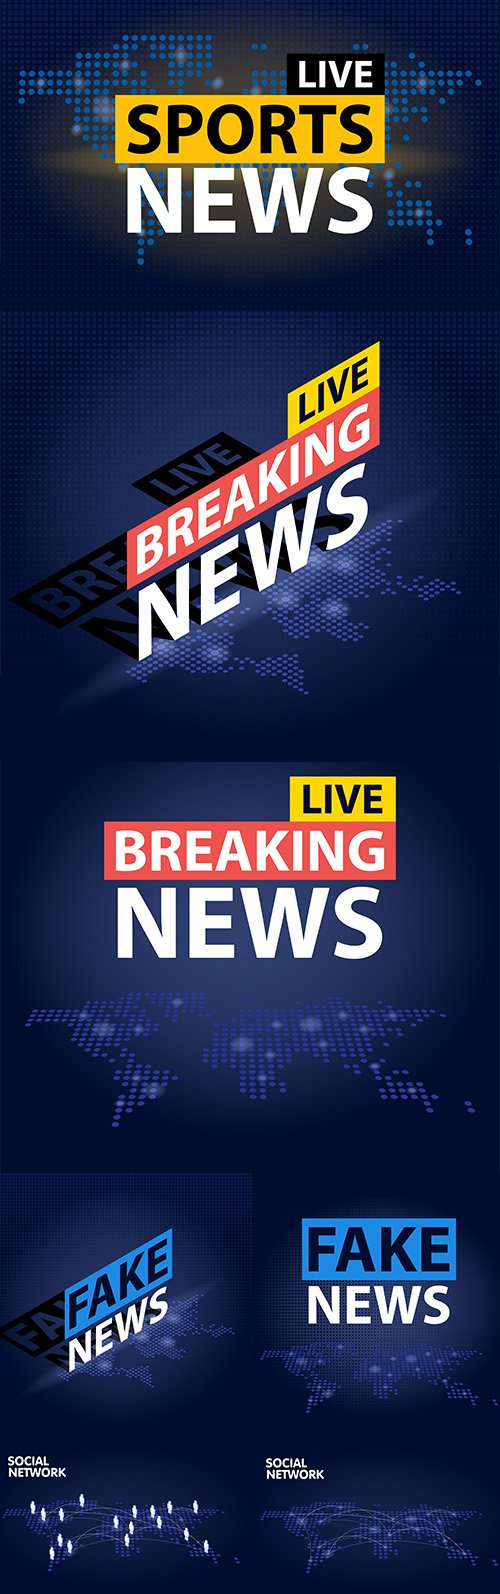 Live Breaking News Background